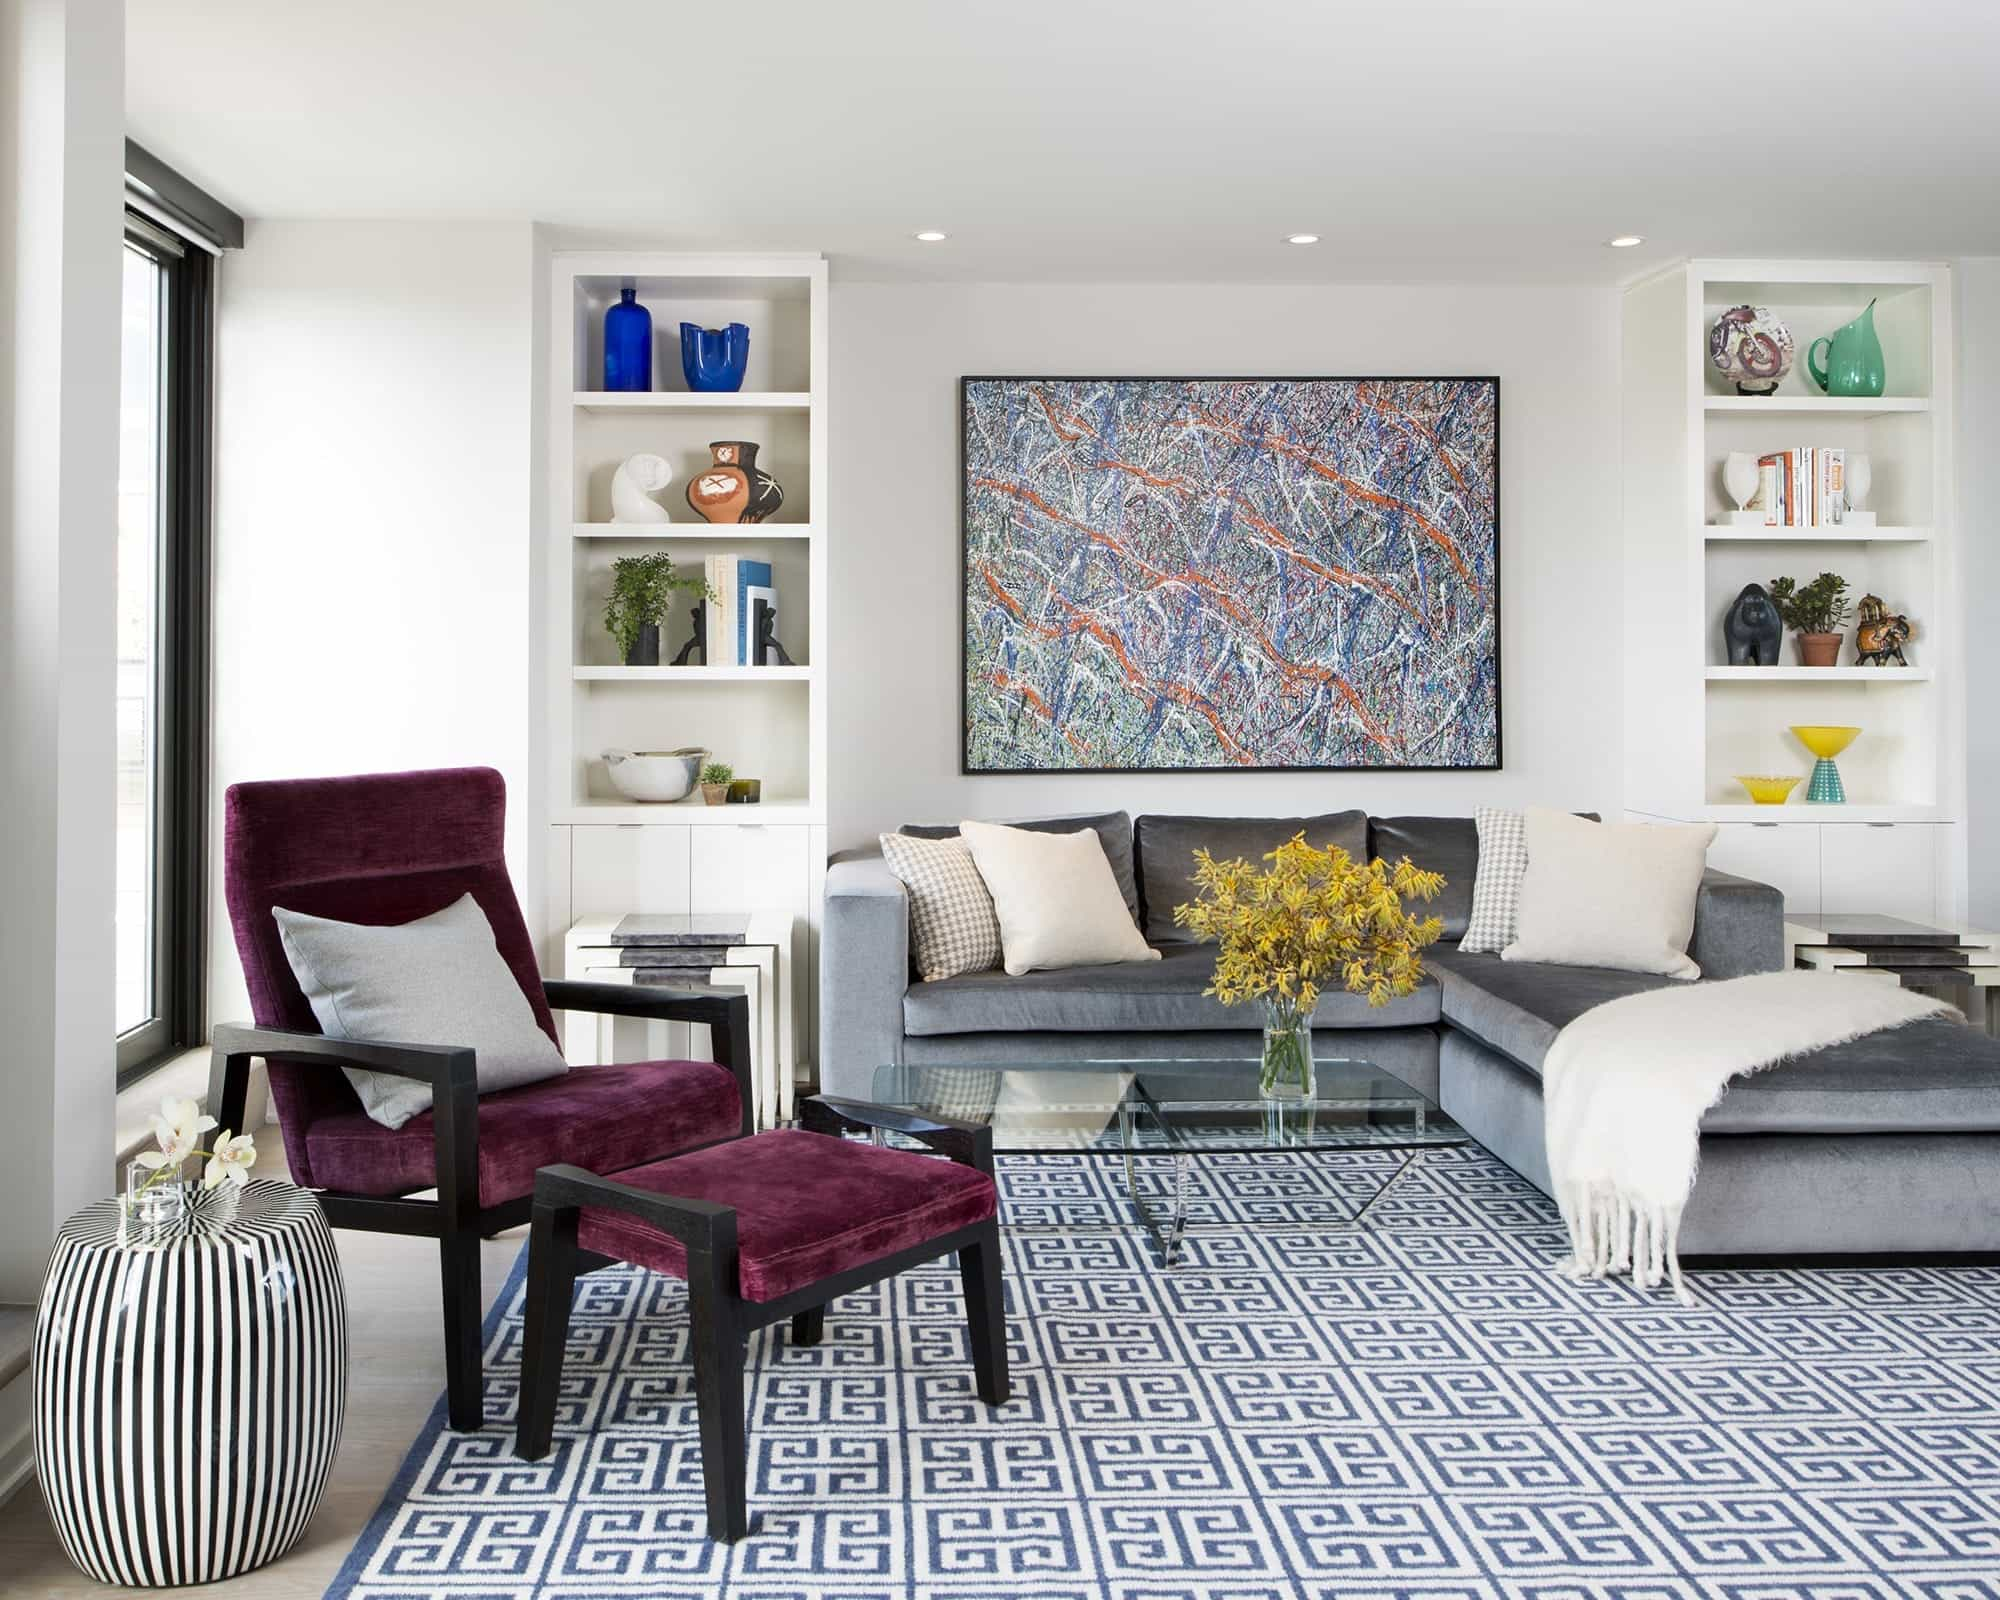 Classy Modern Living Room With Maroon Chair And Greek Key Rug Carpet Flooring (Image 5 of 13)